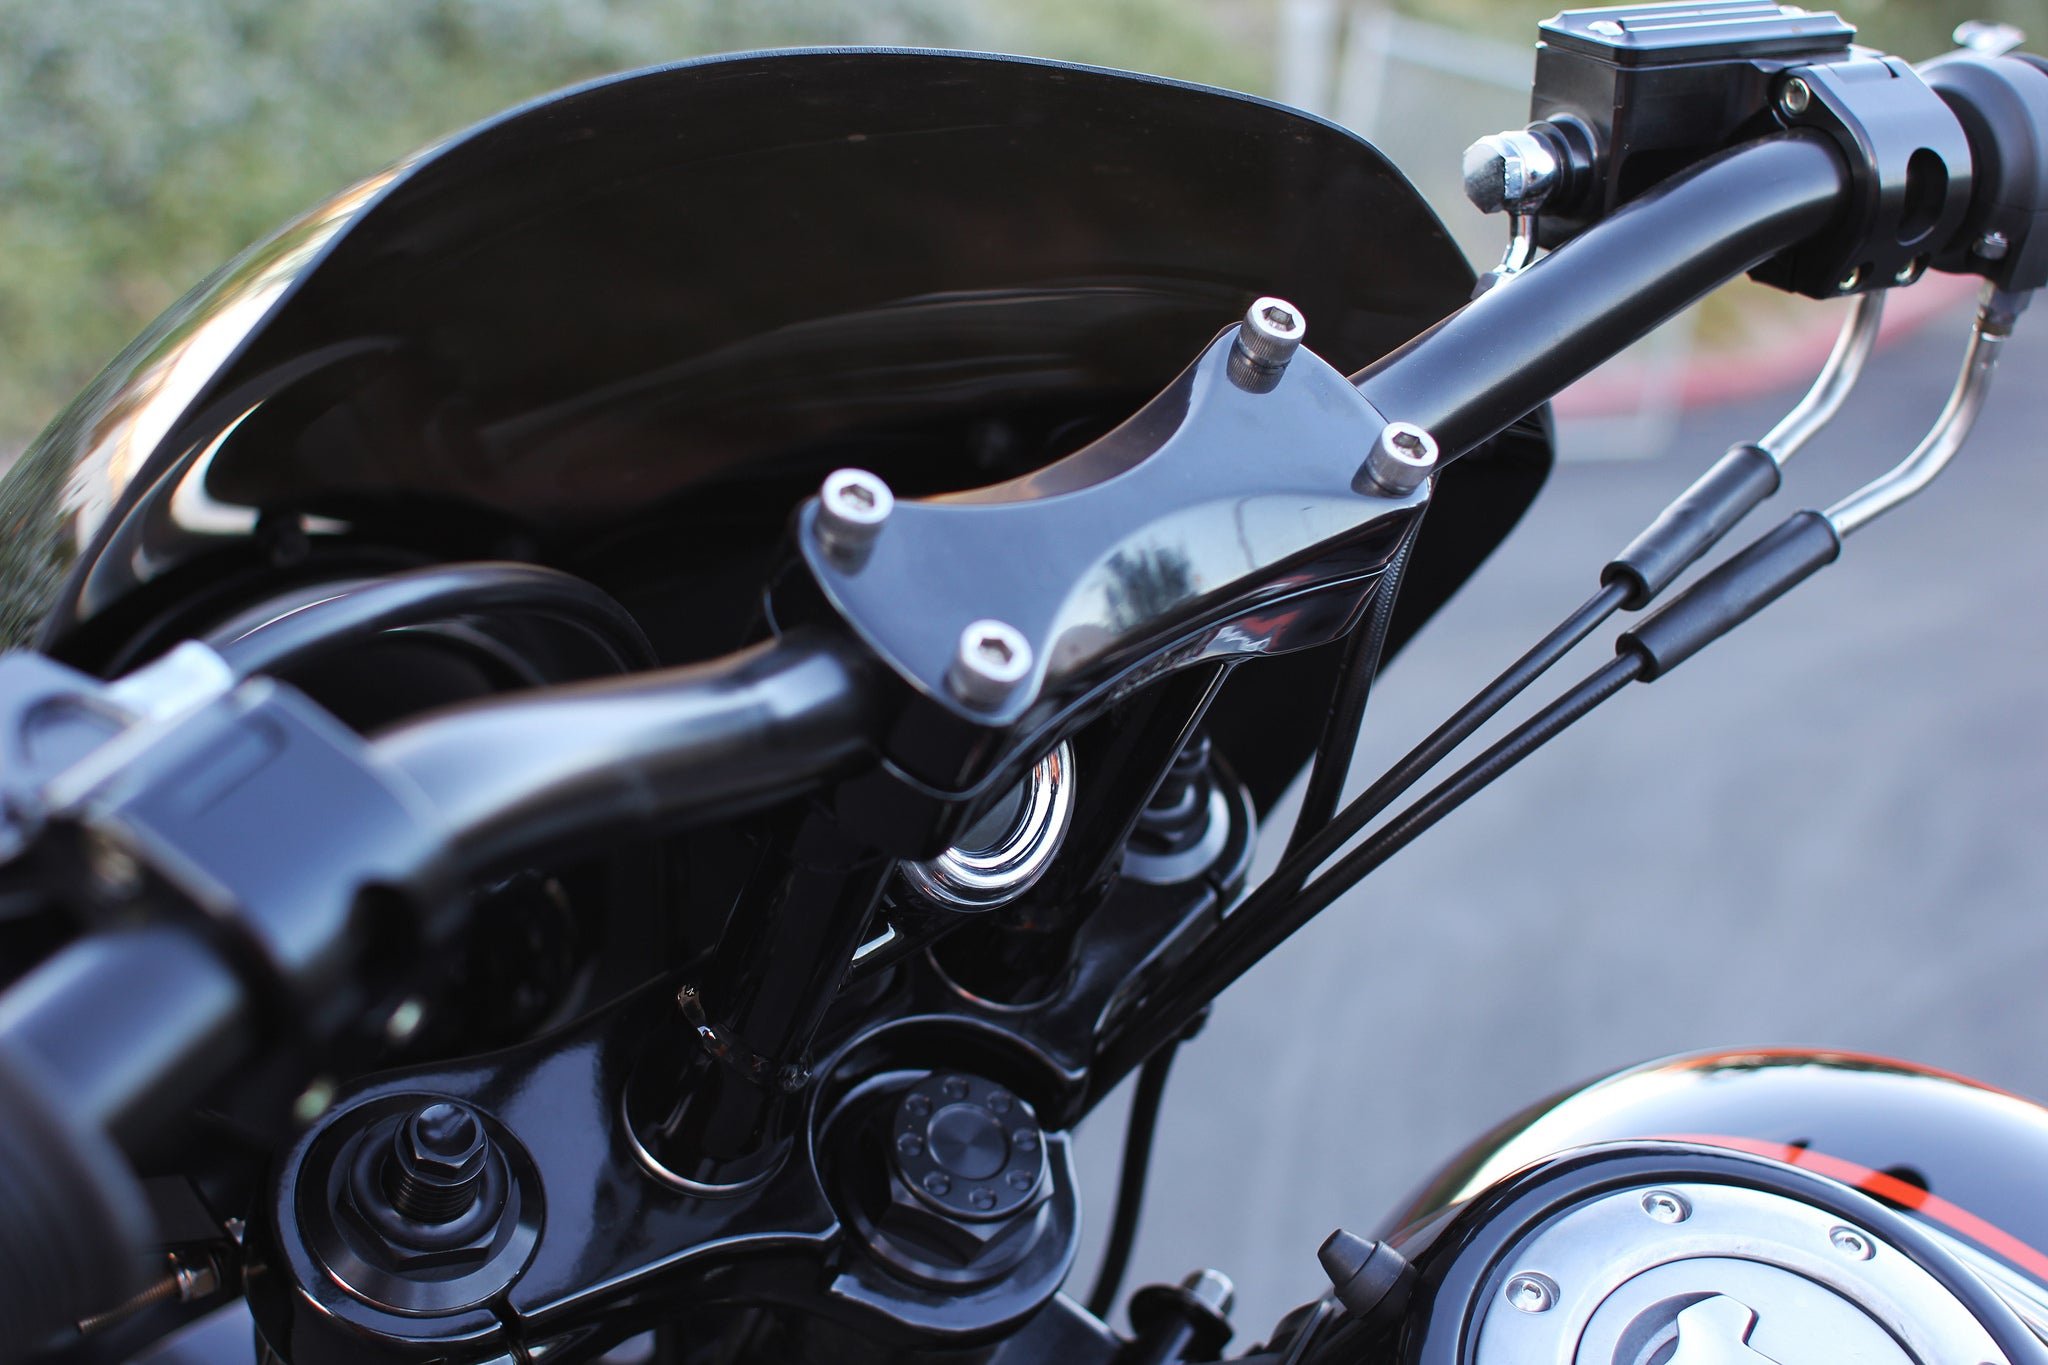 Biltwell Black —What It Is, Why We Think It's Better, and How to Care For It